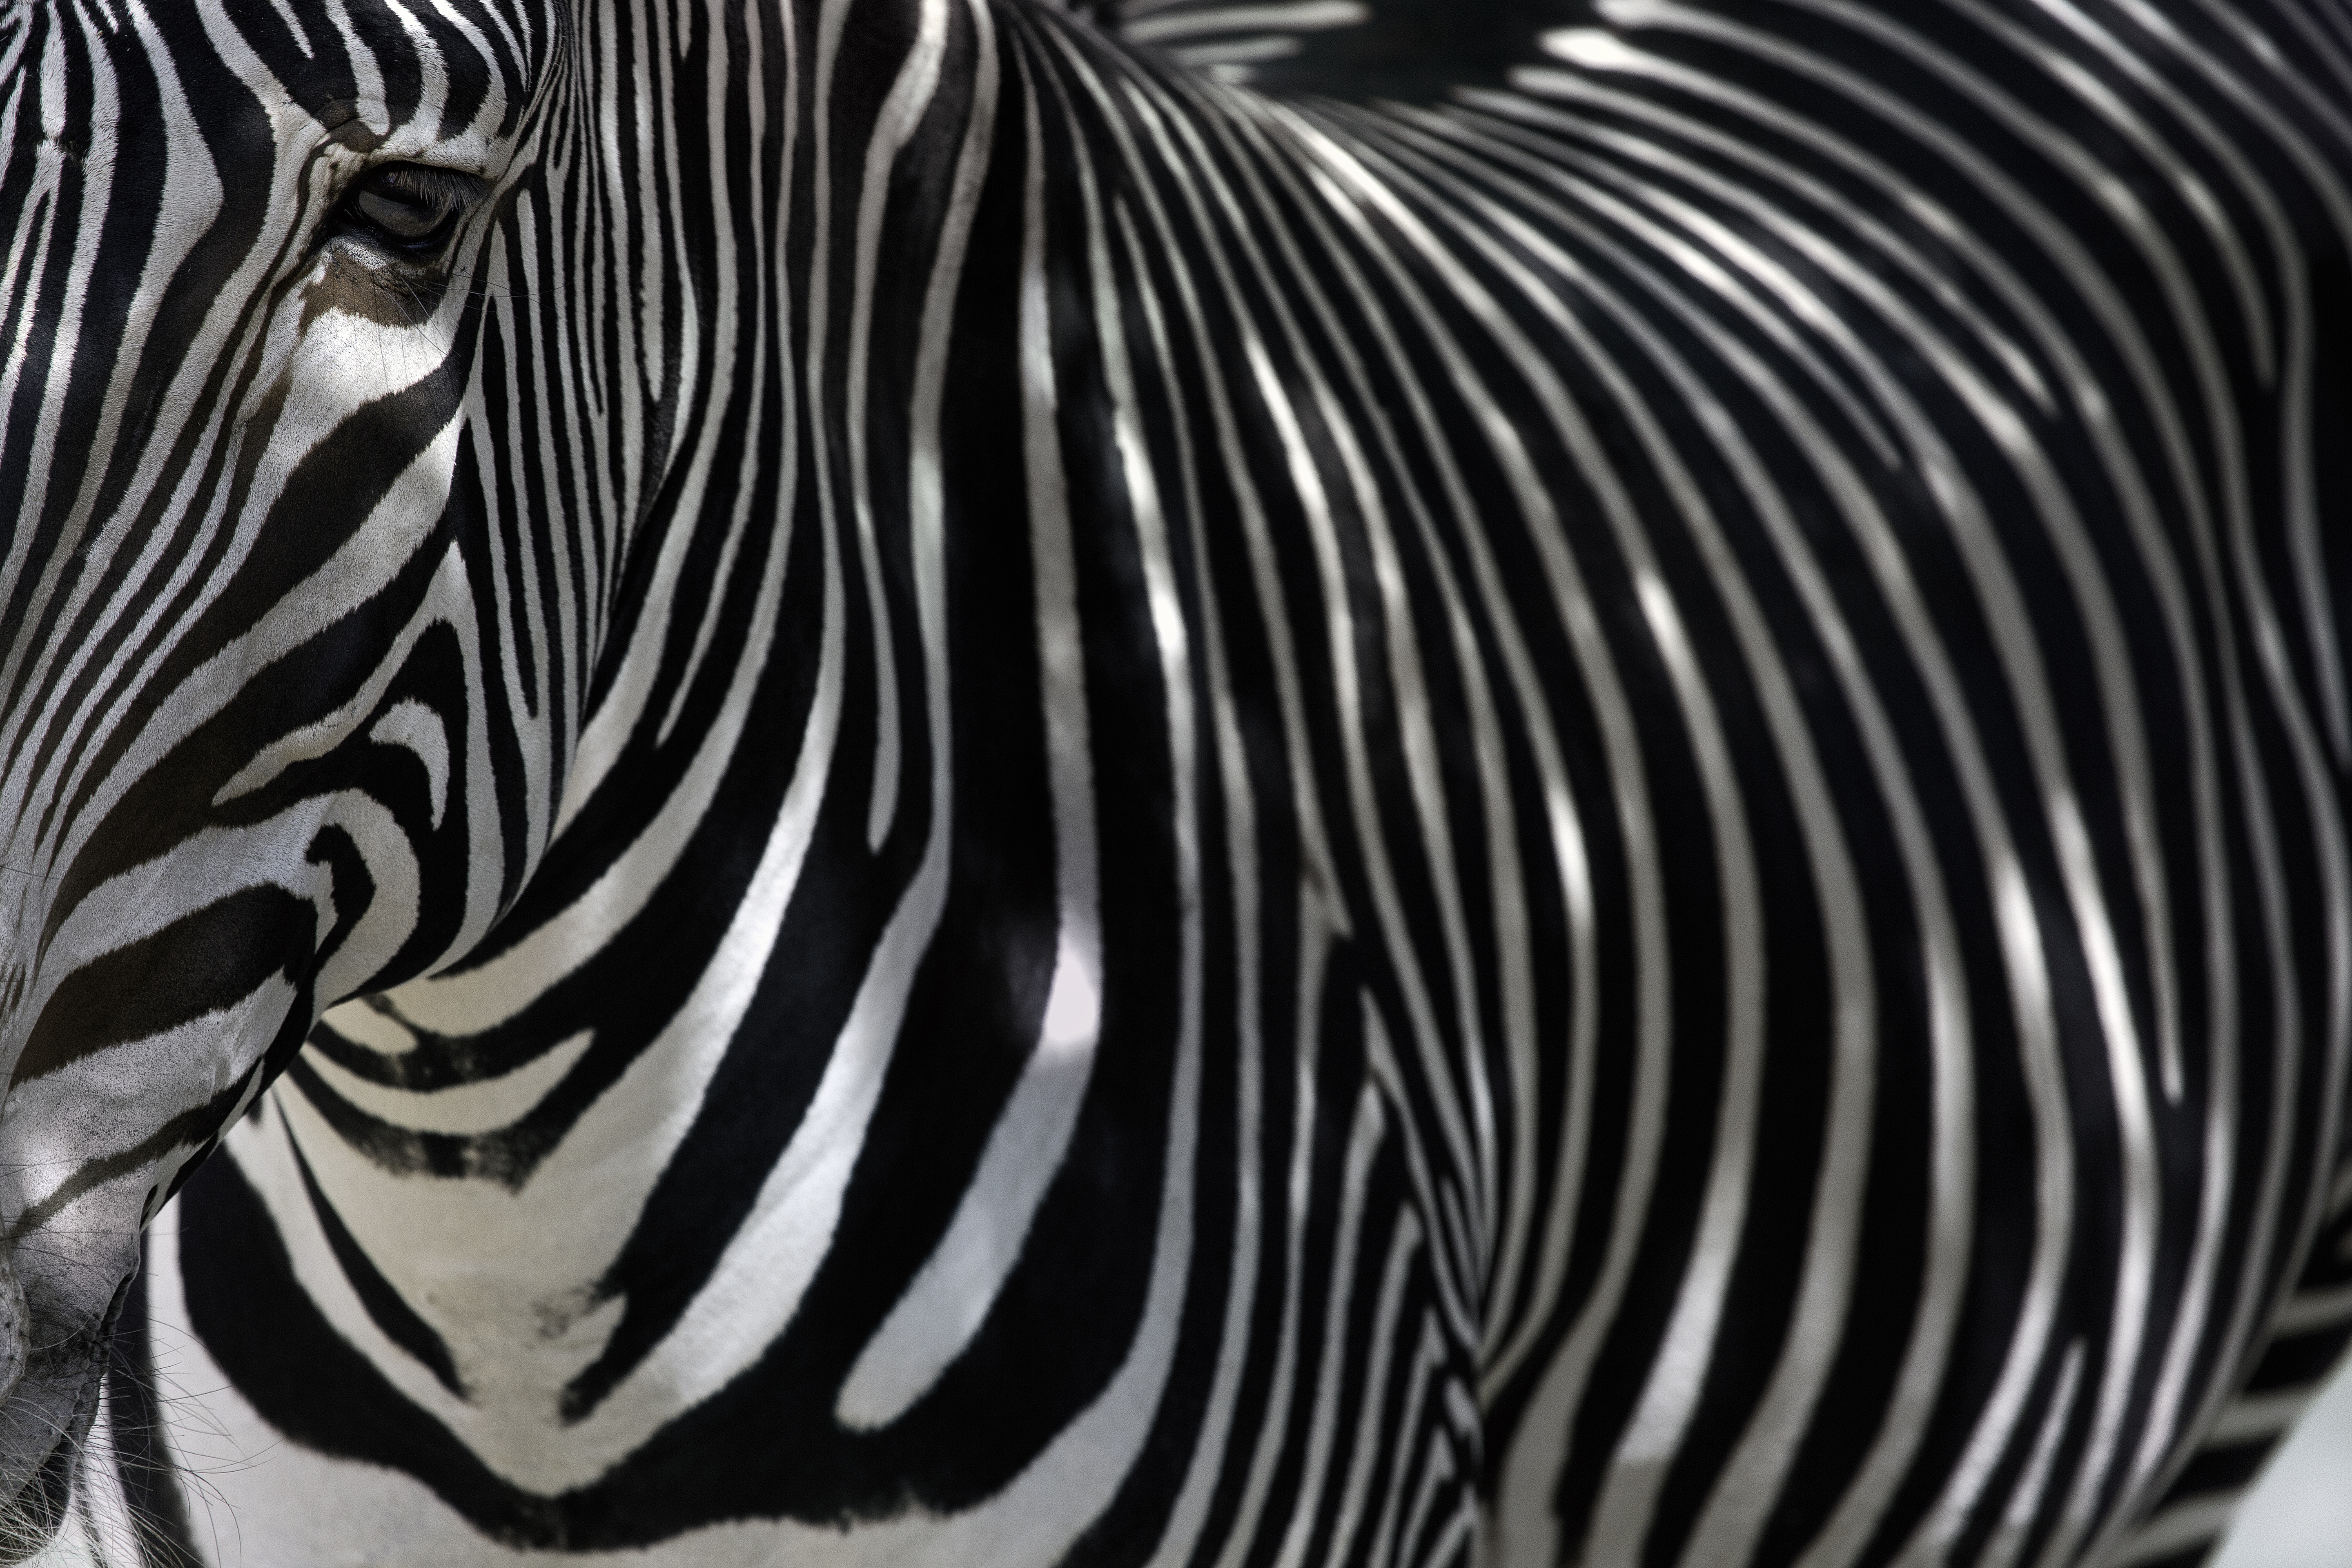 Fine Art Zebra - Left Side (Color)